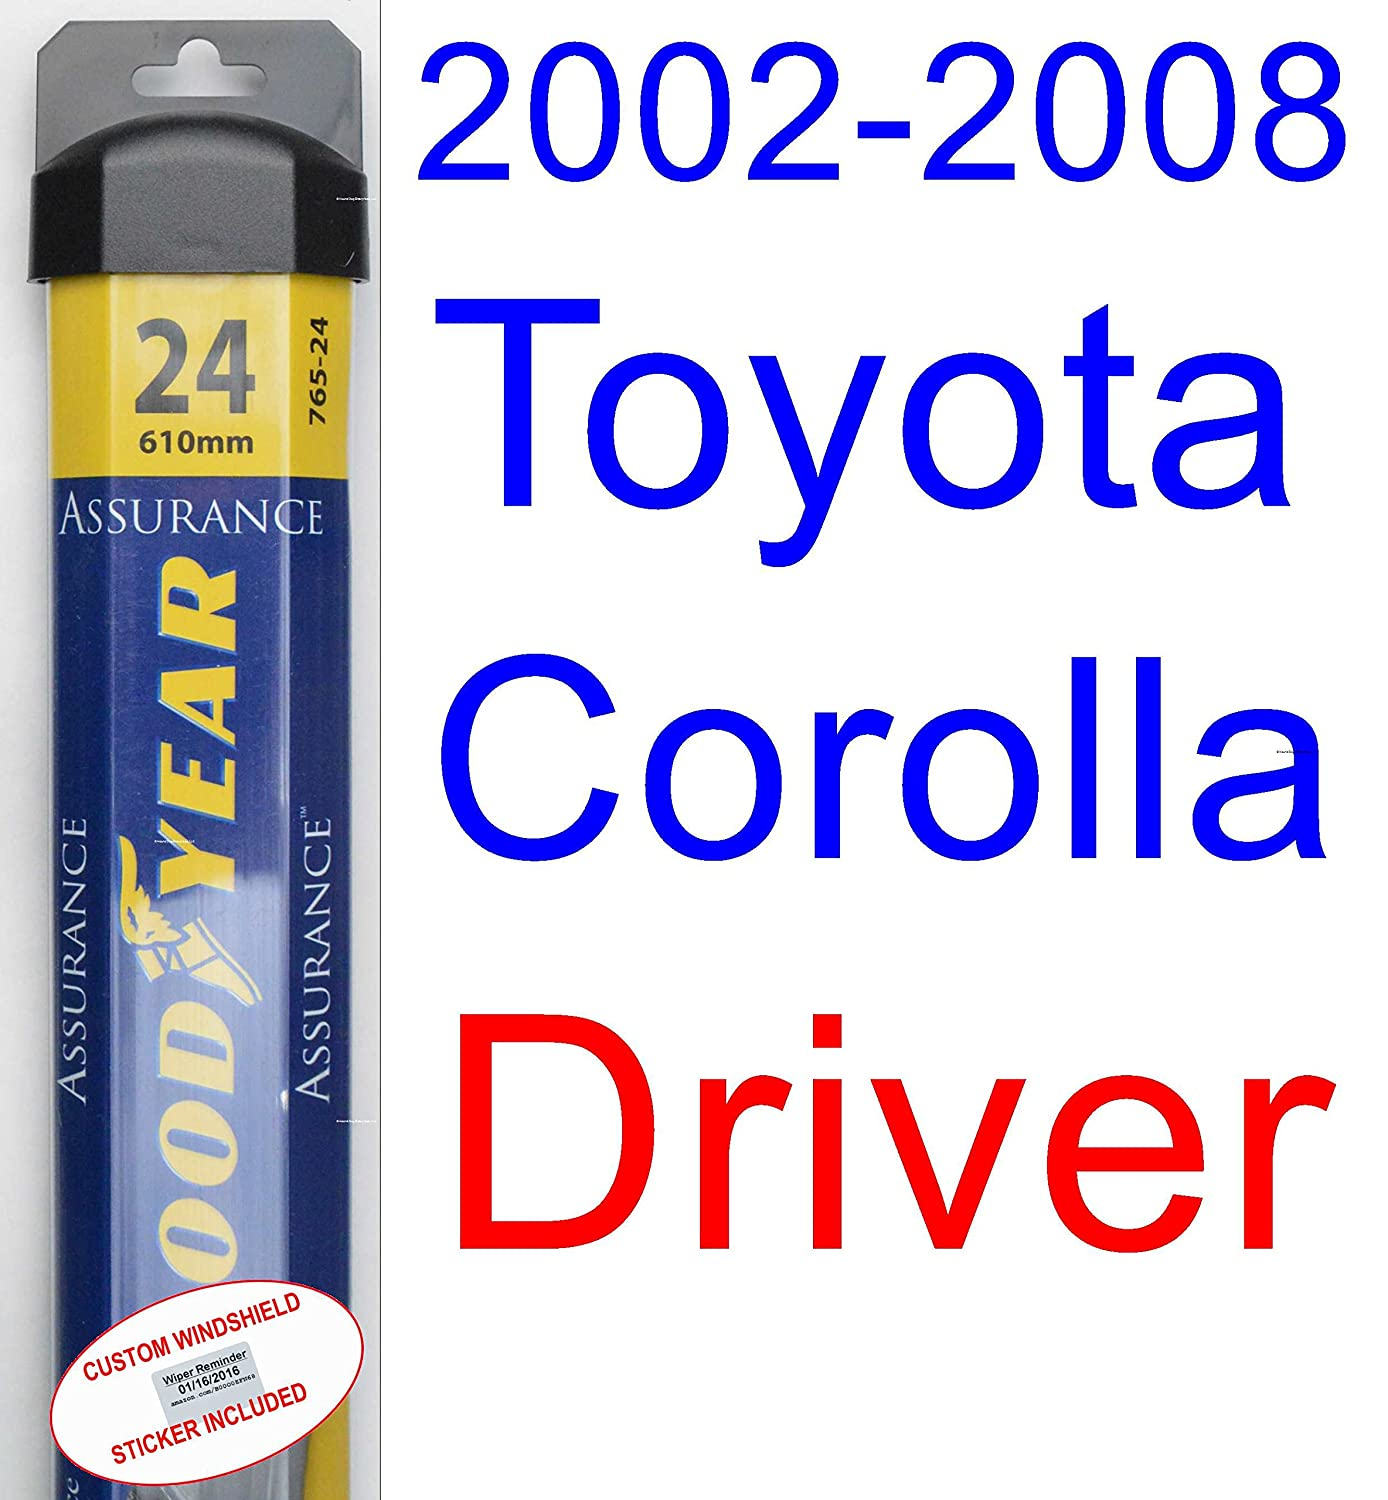 2002 2008 Toyota Corolla Le Wiper Blade Passenger 2007 Saturn Outlook Engine Diagram Goodyear Blades Assurance 20032004200520062007 Automotive